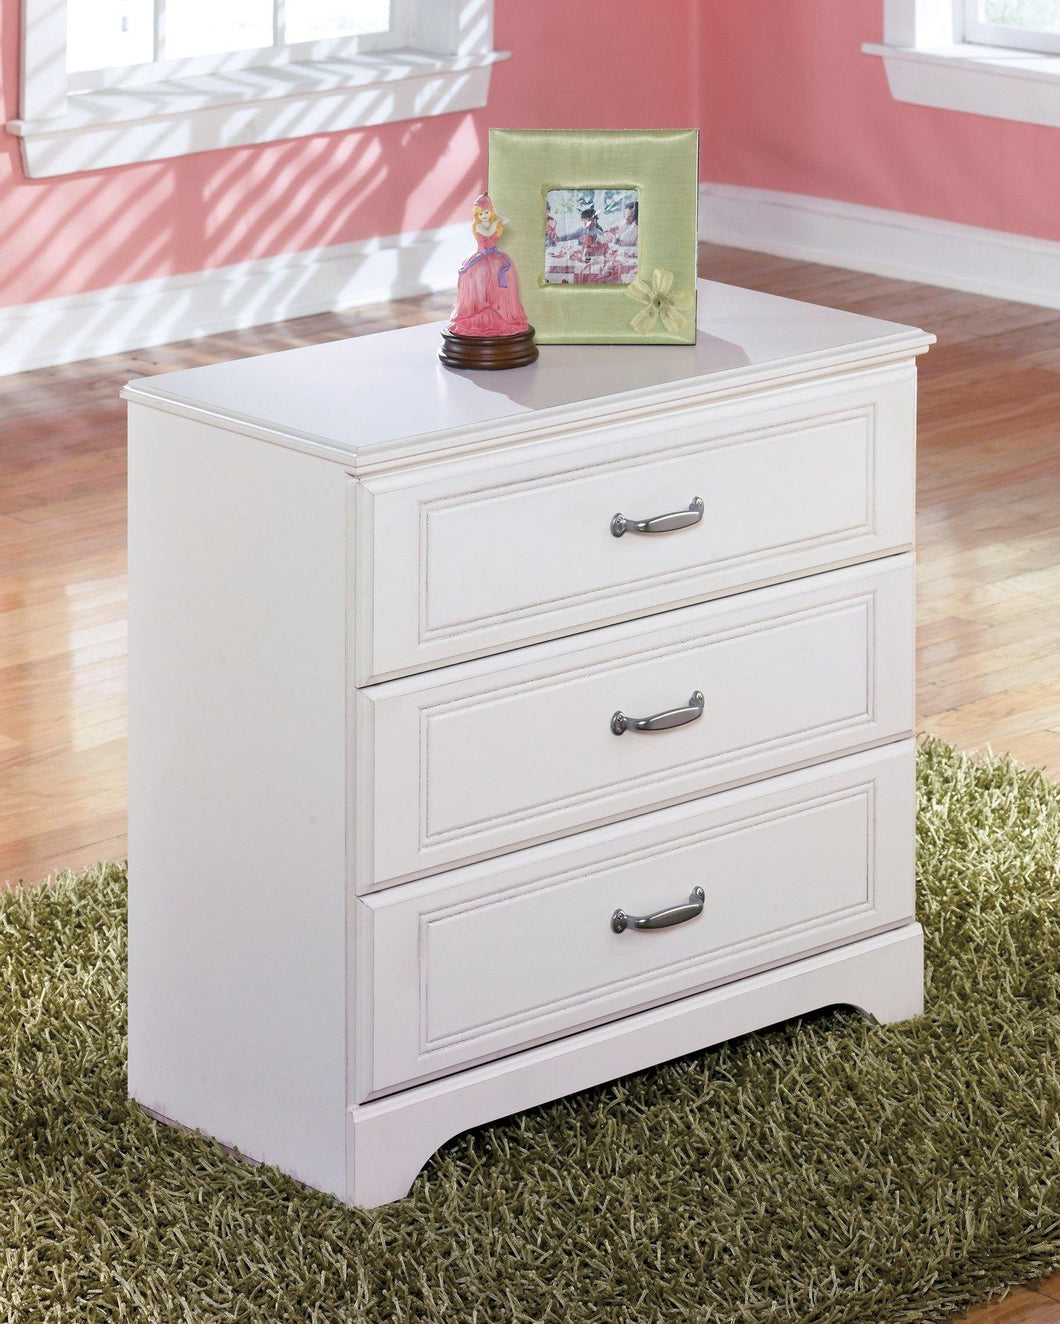 Lulu Twin Loft Bed with 3 Drawer Storage and Bookcase B102B16 Girls Bedroom Furniture By Ashley Furniture from sofafair